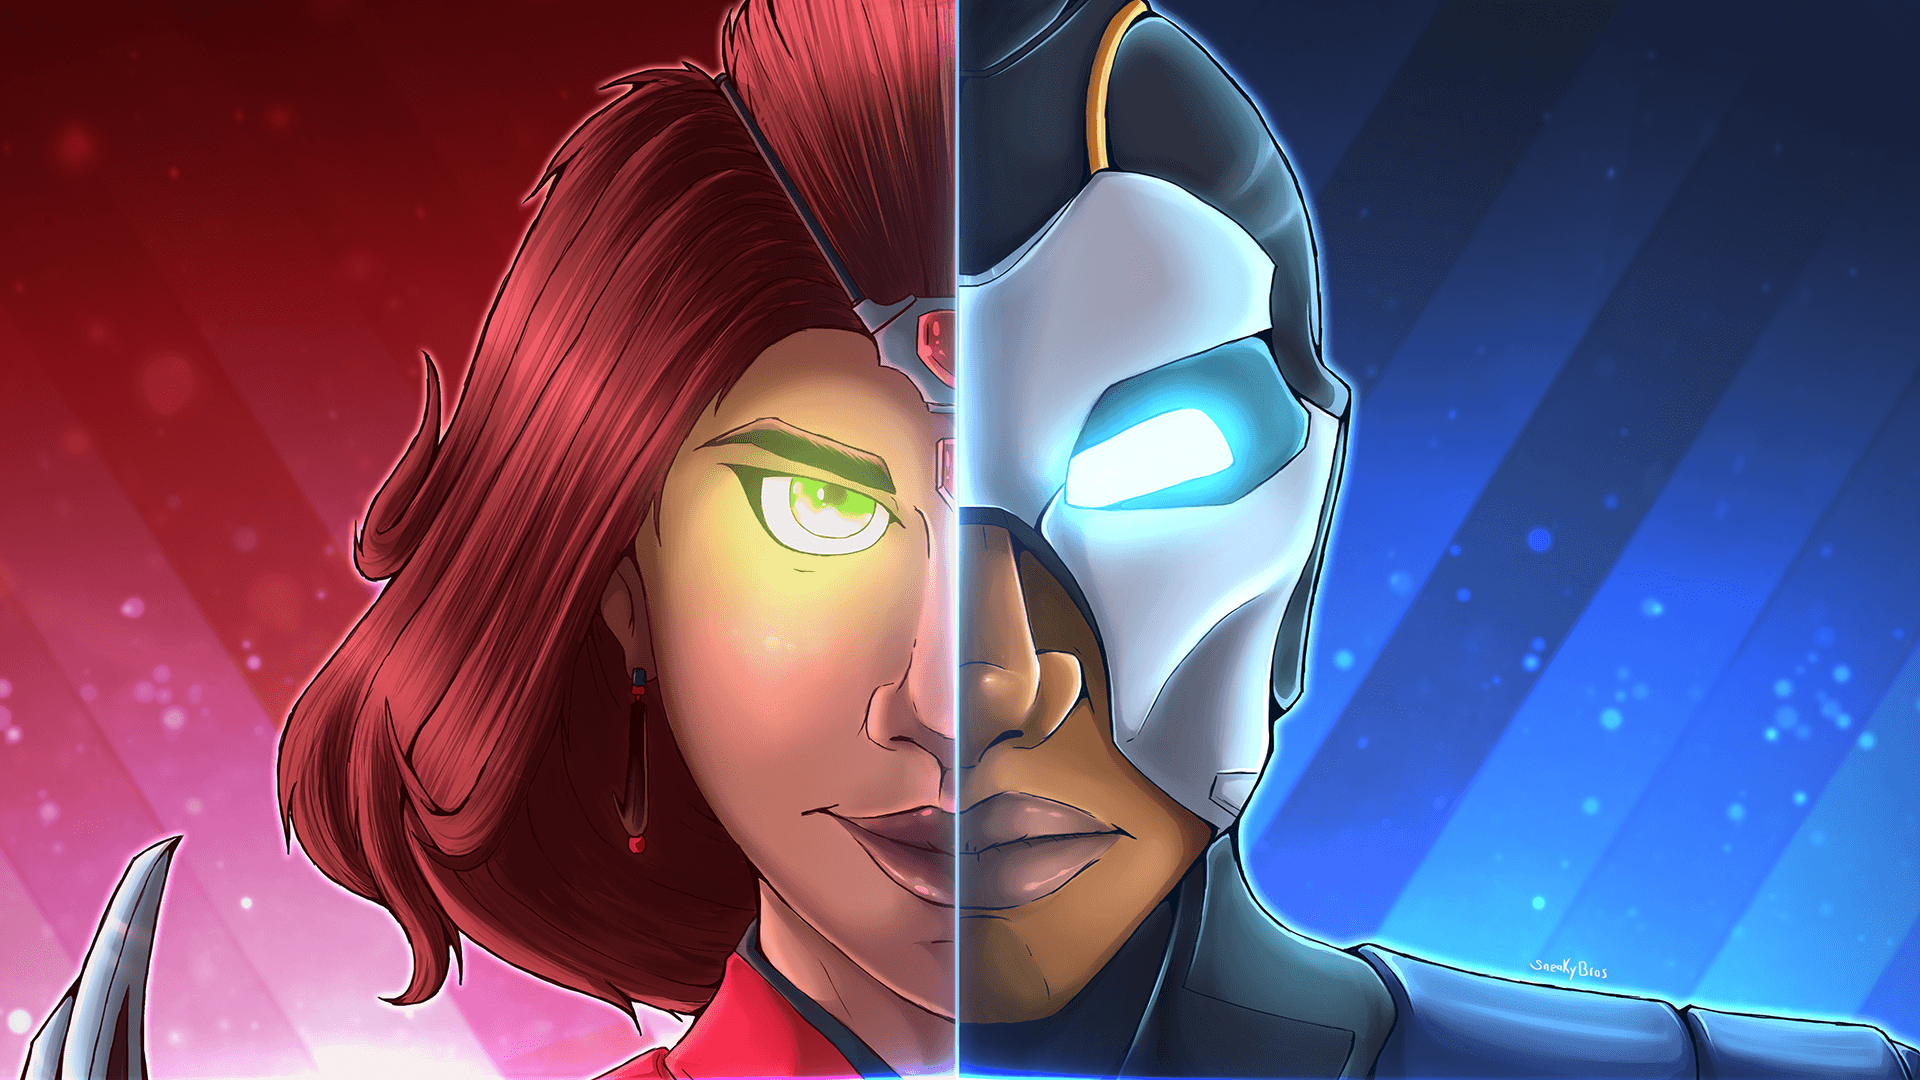 1920x1080 Wanted To Make A Split Series For Fortnite Skins! Valor and Carbide ...